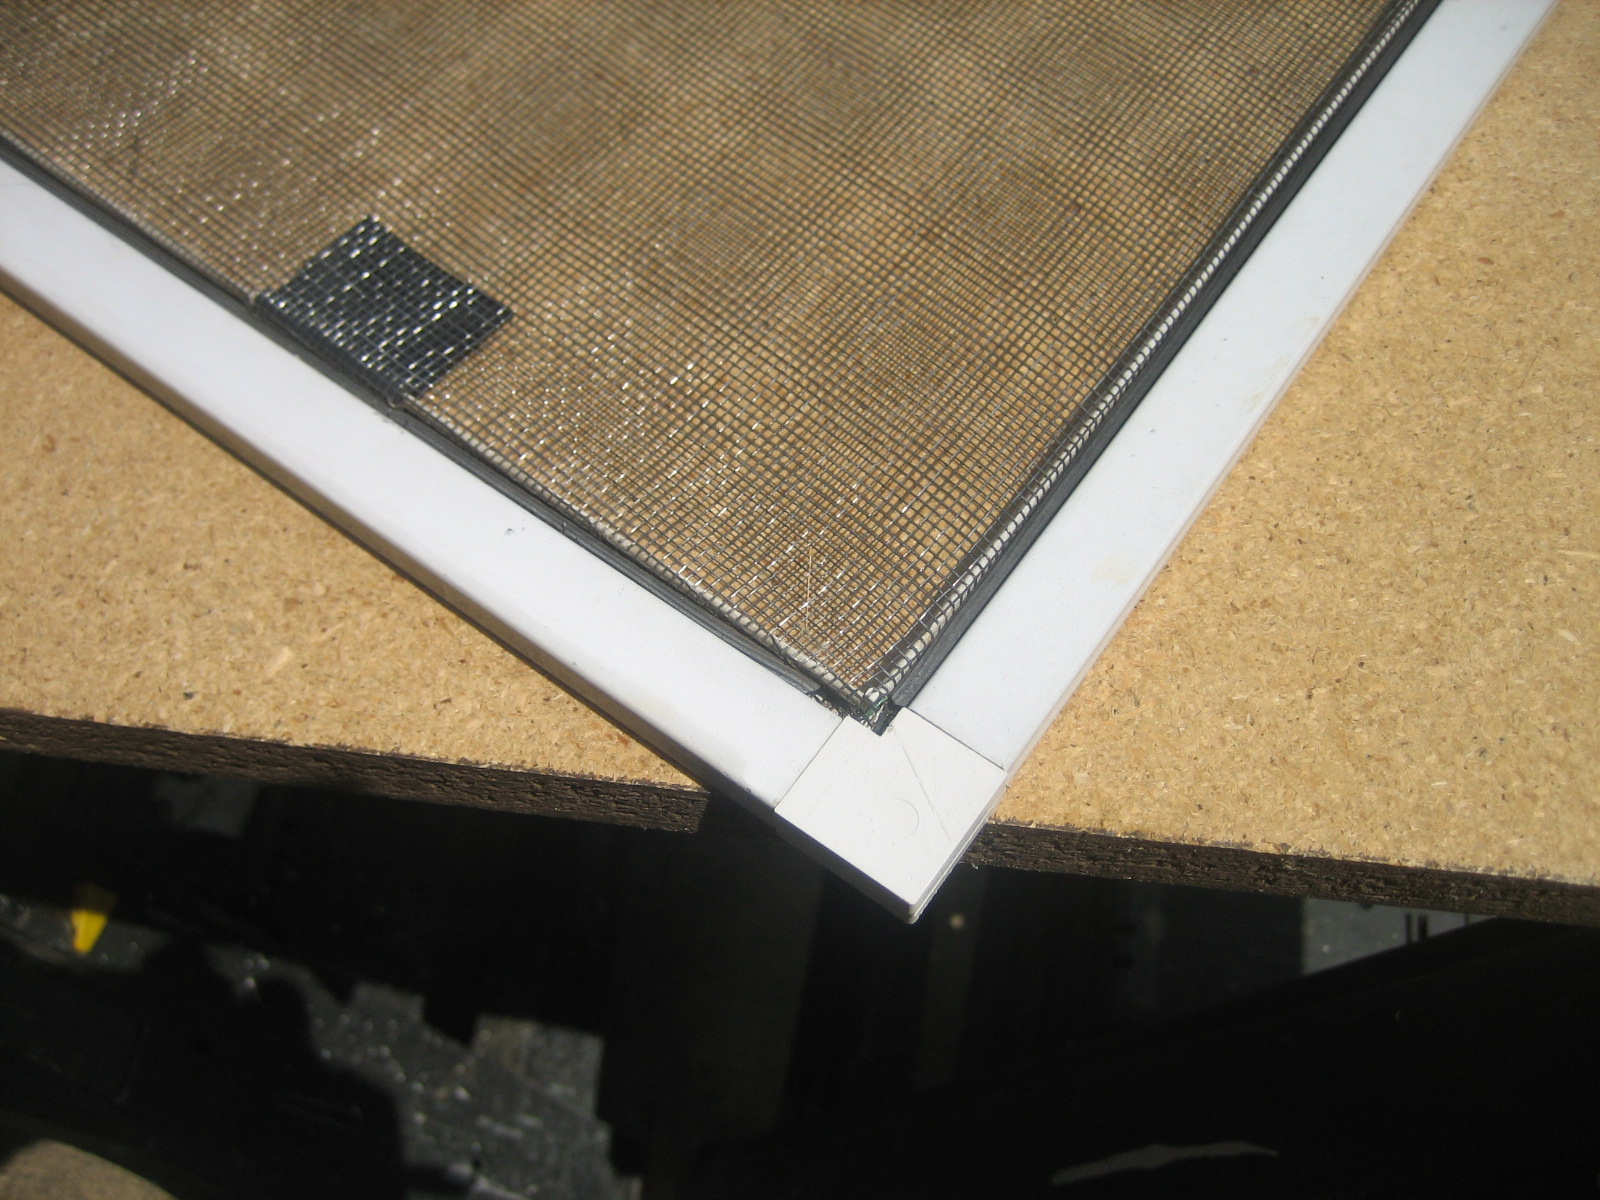 Picture of TAKE OUT THE DAMAGED SCREEN